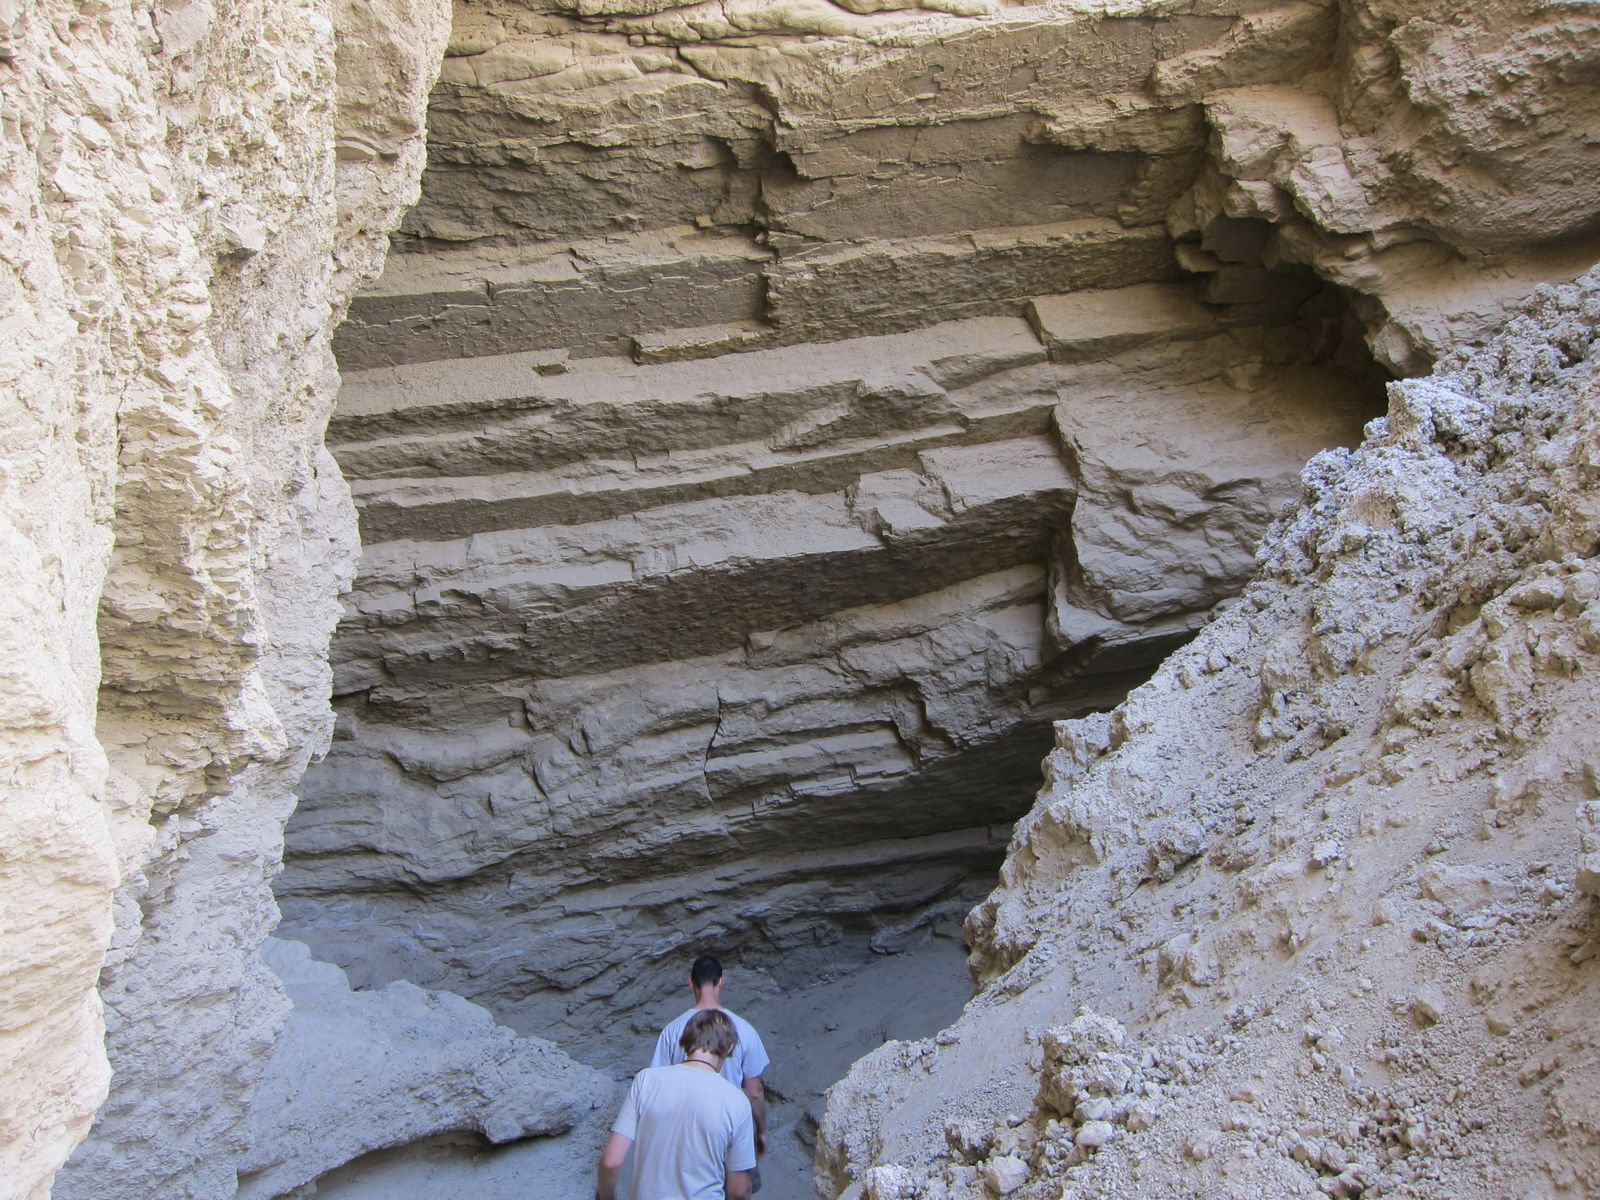 Mark and Andrew head into the slot canyon